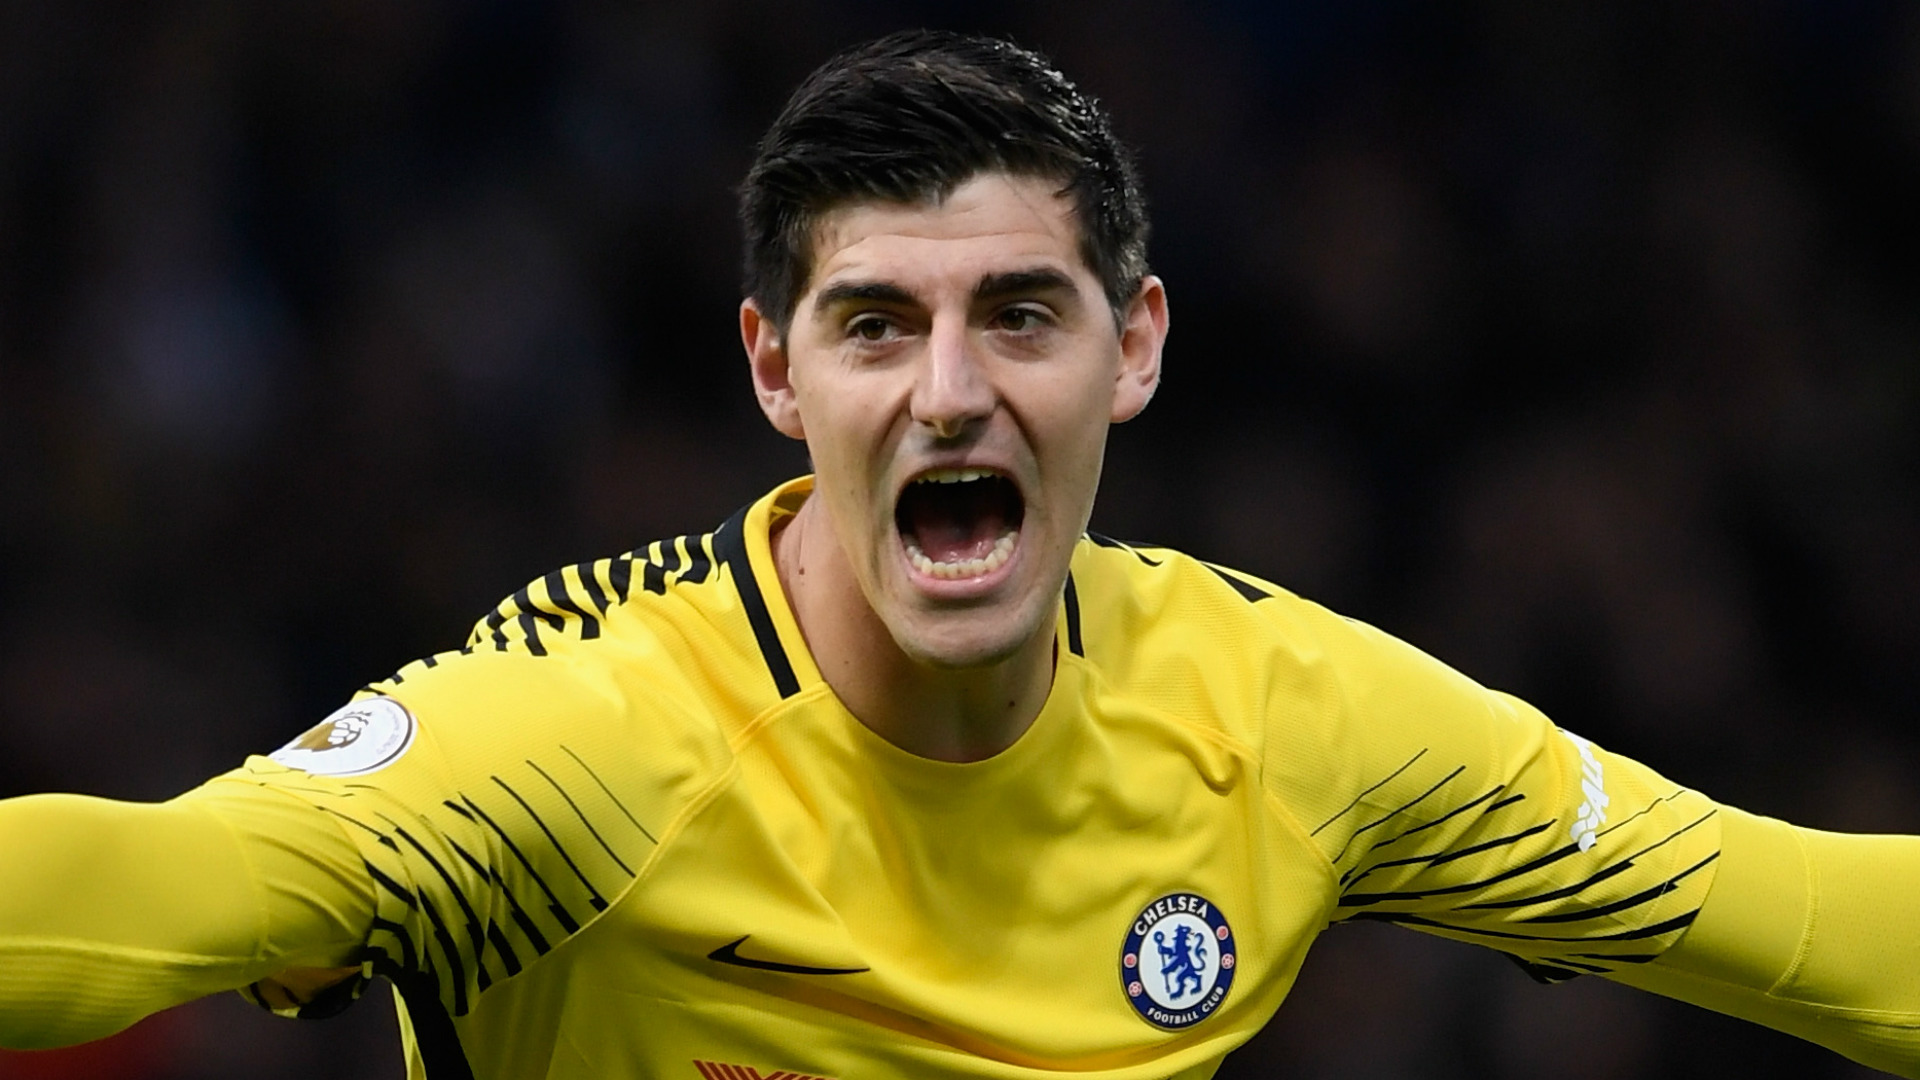 Chelsea offer Courtois new deal that will make him world's best-paid goalkeeper